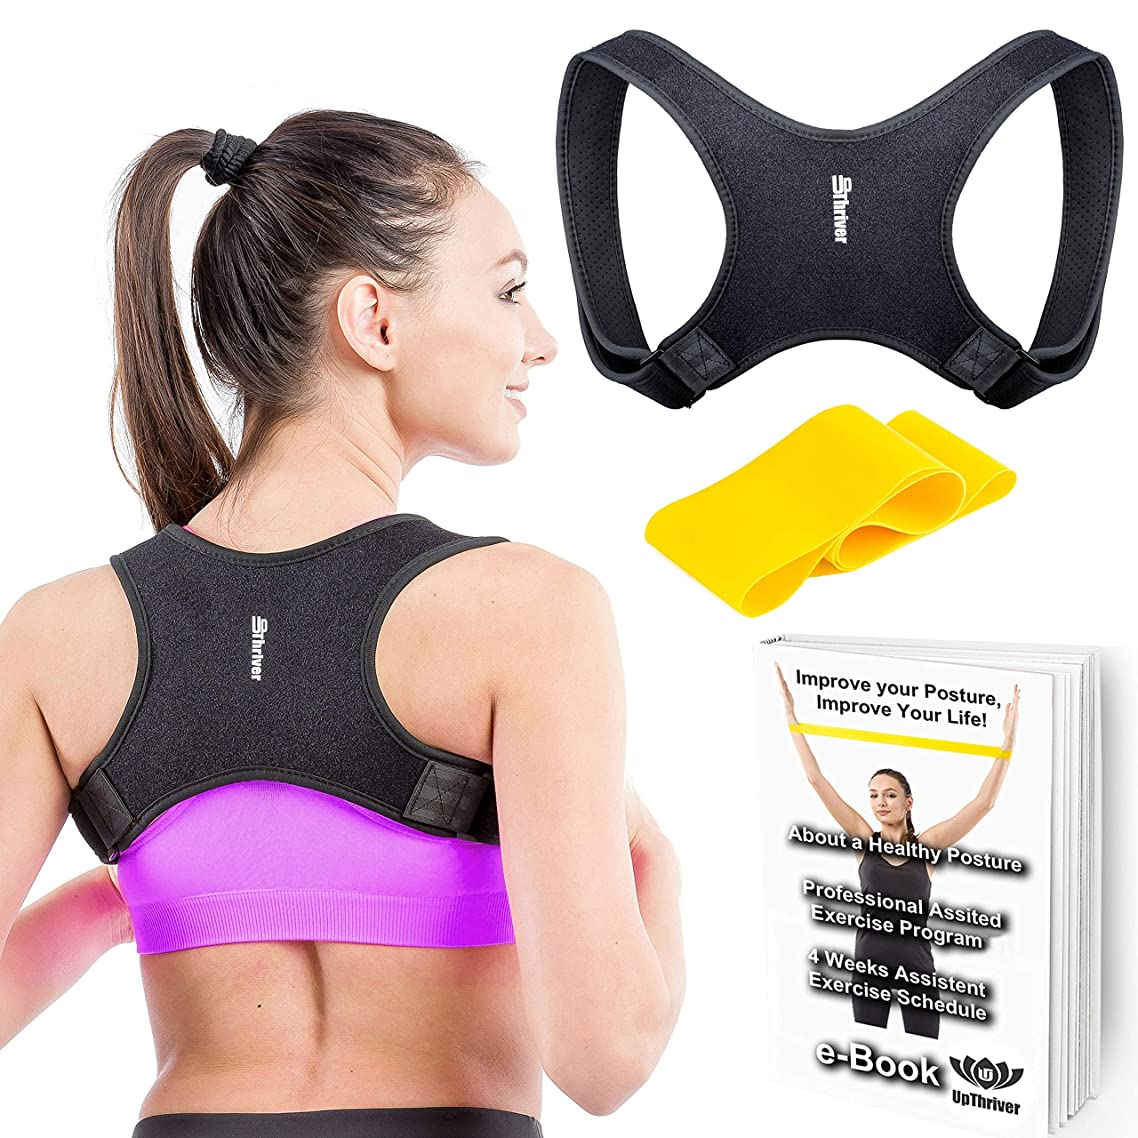 UpThriver Back Brace Posture Corrector – Adjustable Support for Women & Men - Regain Natural Posture - Pain Relief Slouching & Under Clothes Hunching Corrector